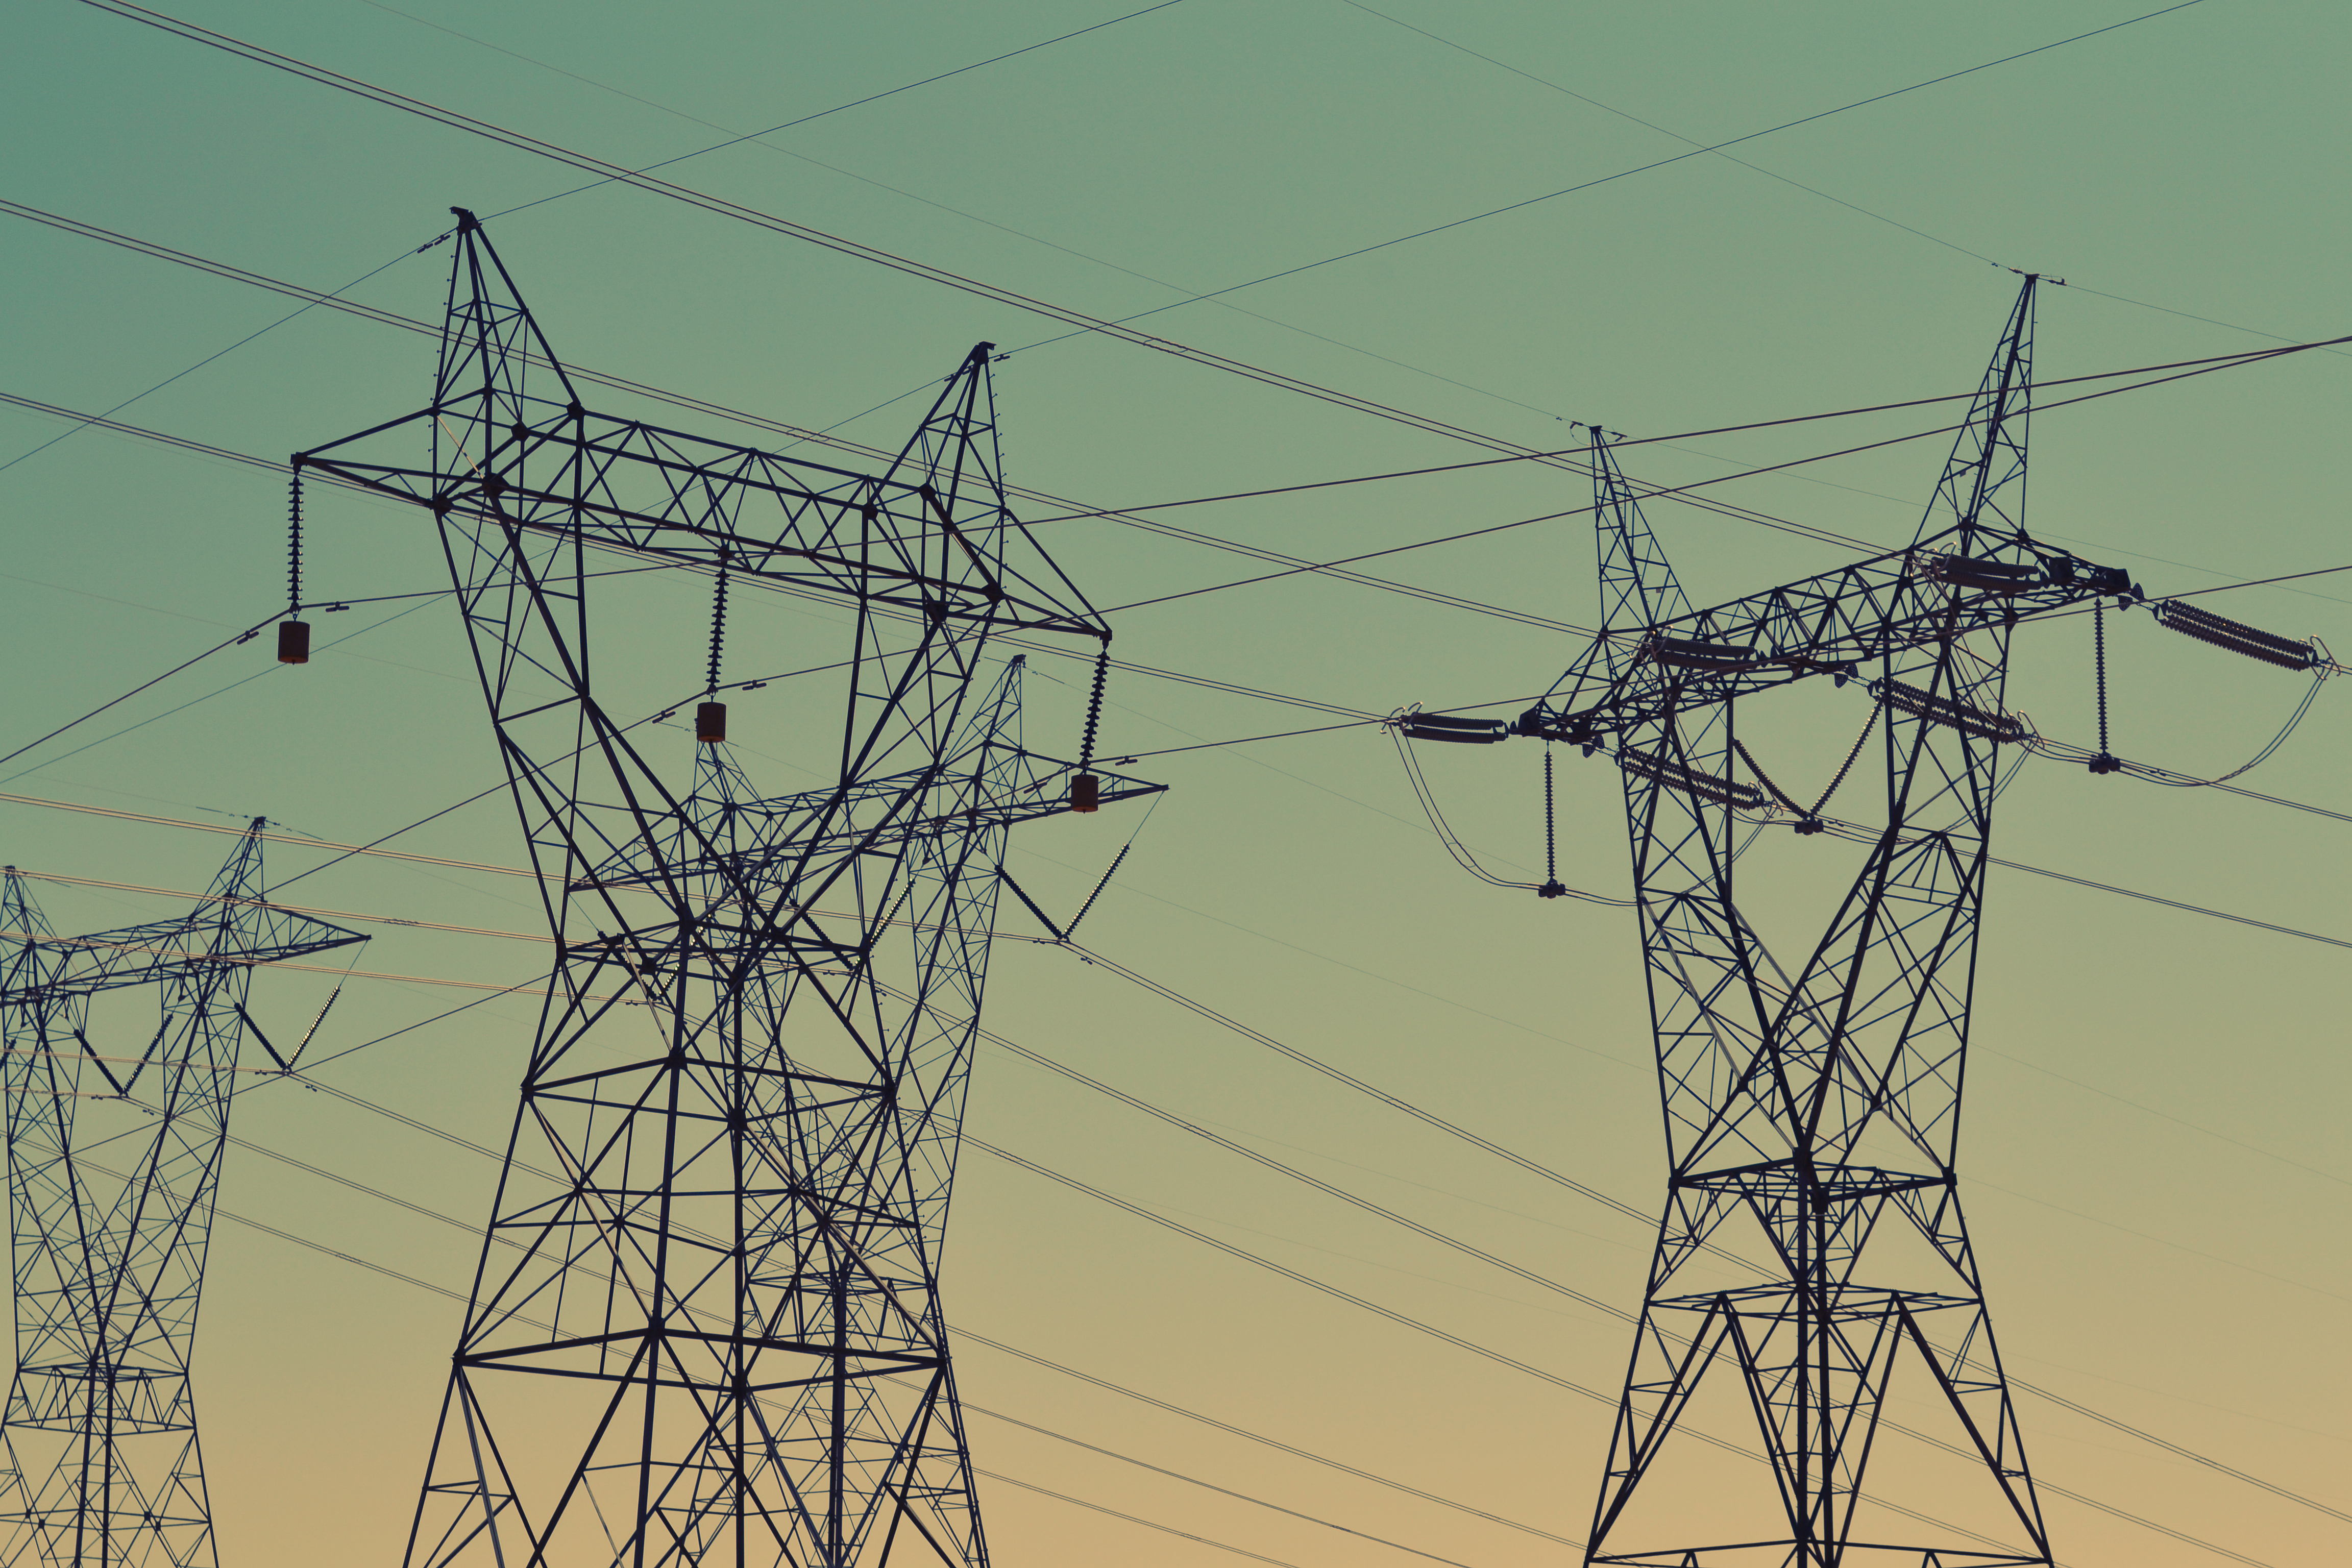 Victorian Household Electricity Invoices: What impacts them and why are prices changing?